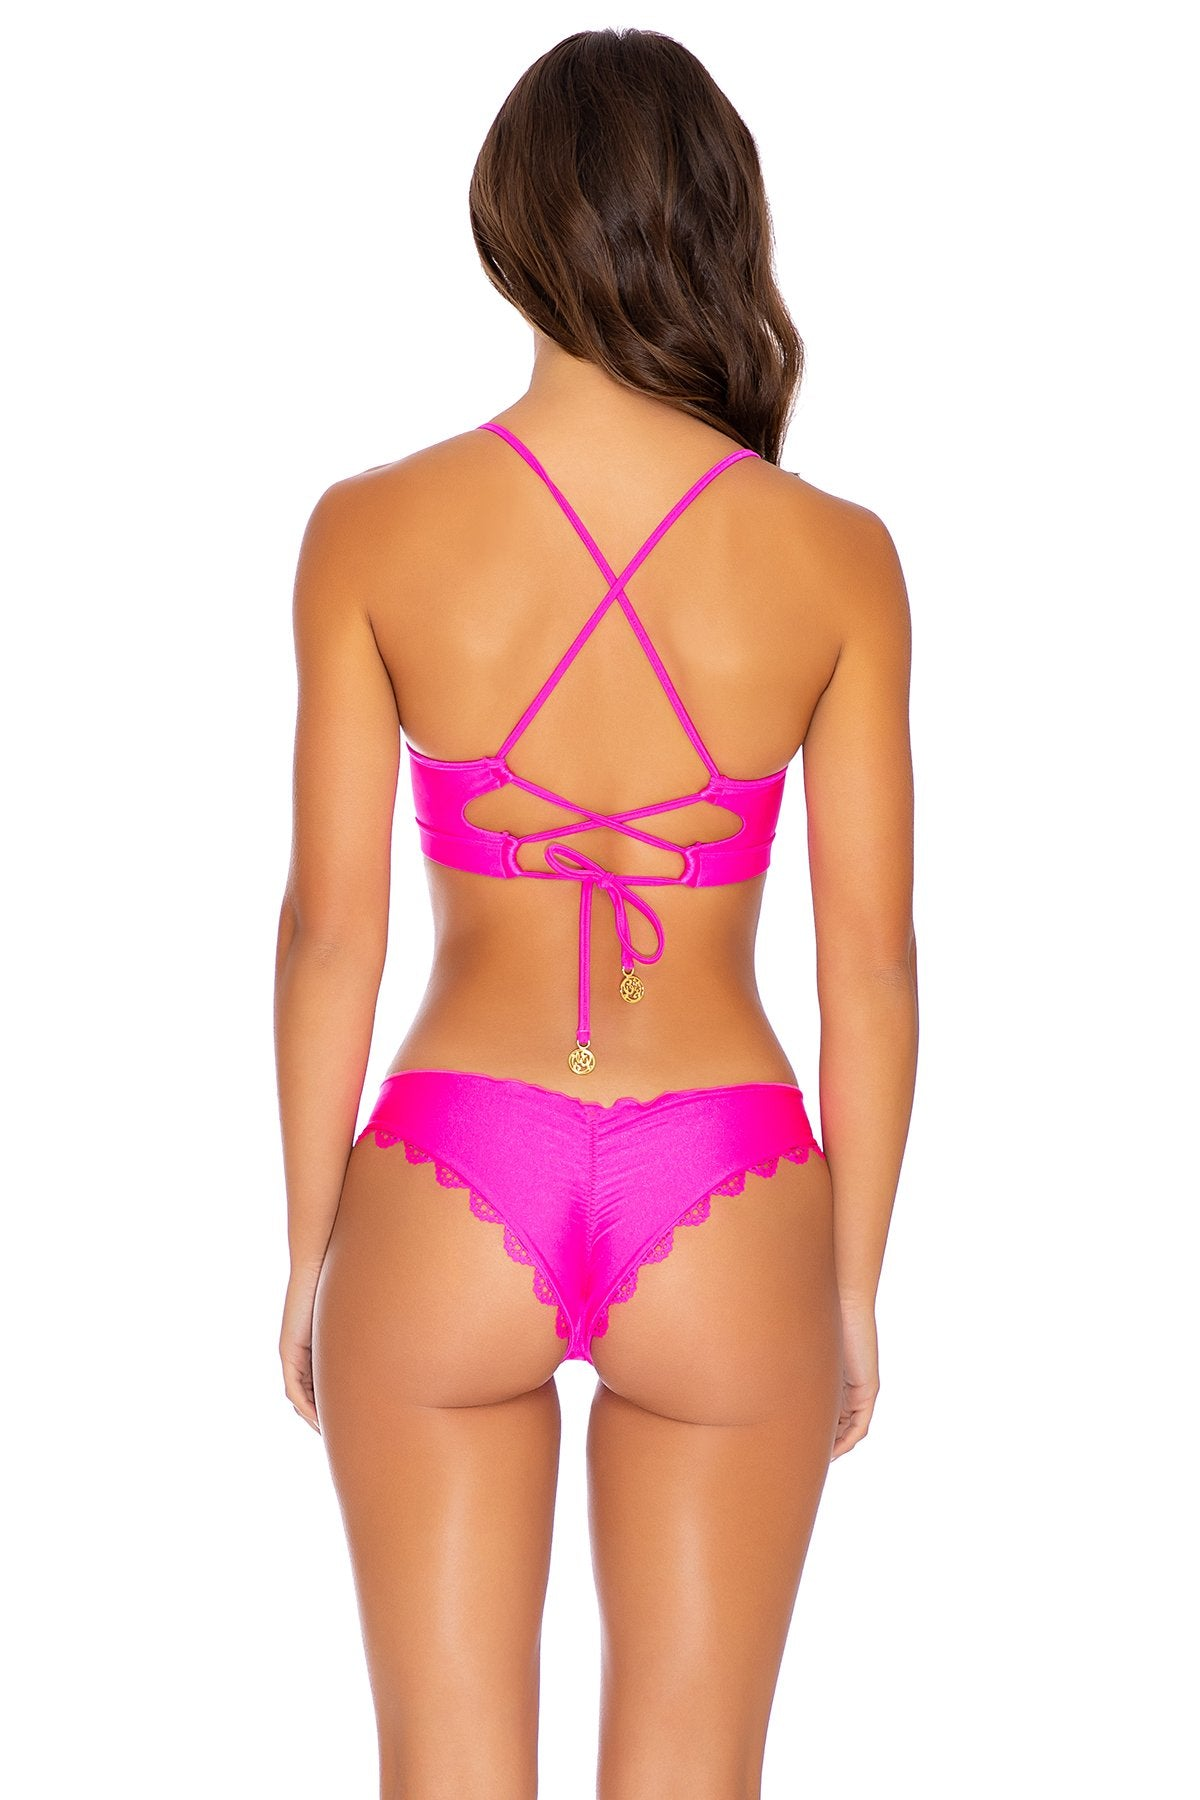 NOCHES DE SEVILLA - Underwire Top & Seamless Wavey Ruched Back Bottom • Poppin Pink